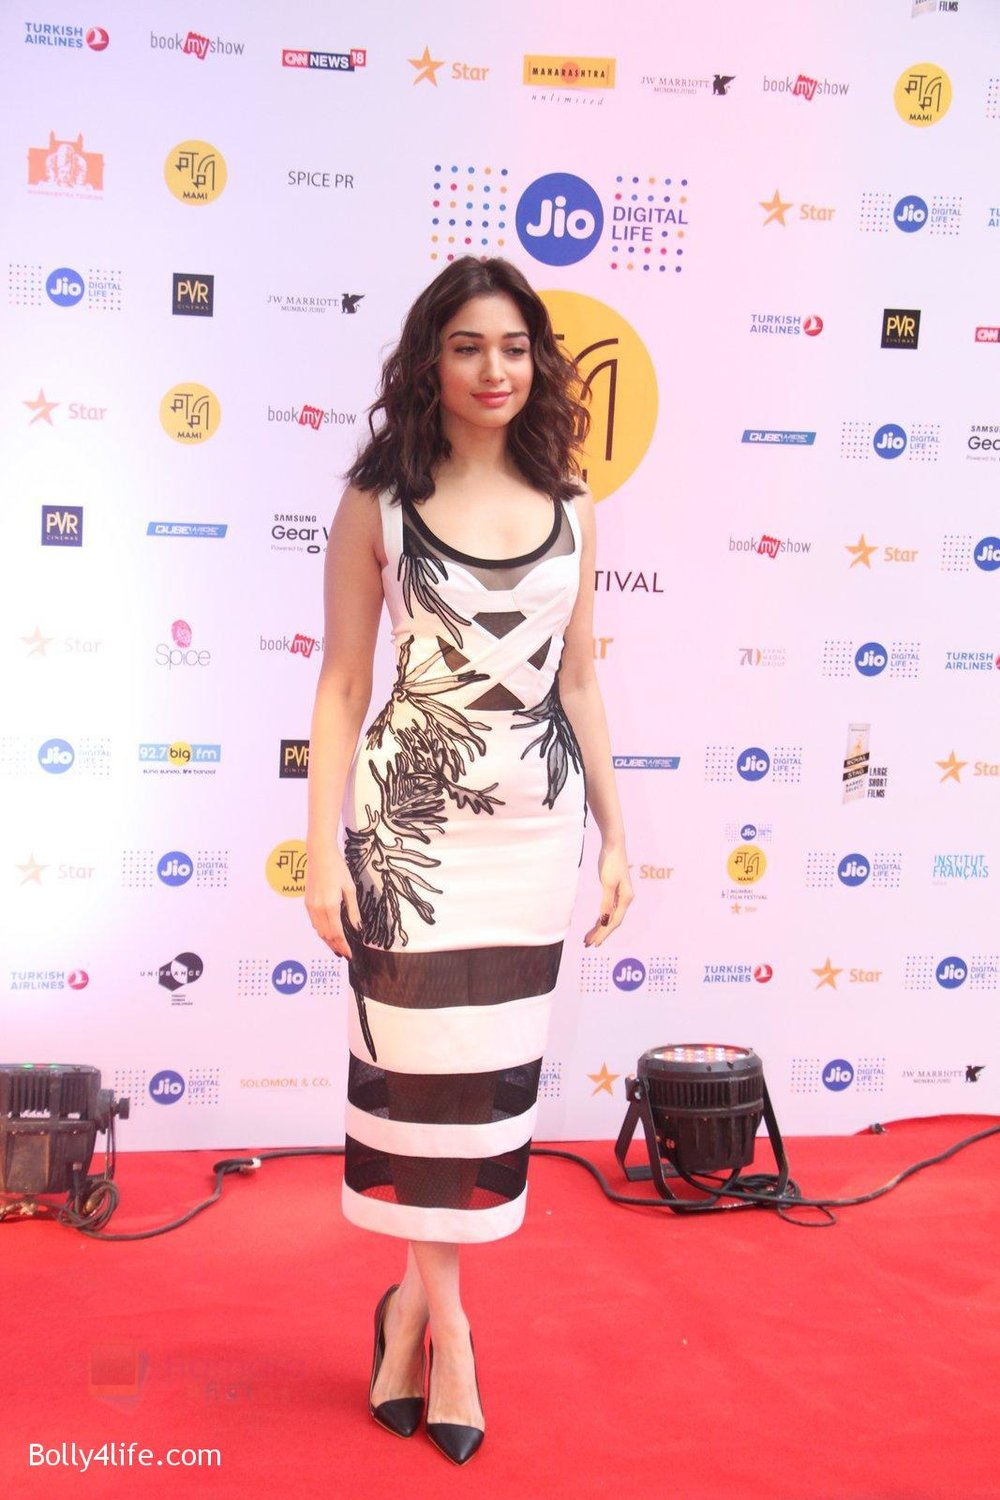 Tamannaah-Bhatia-at-MAMI-Film-Festival-2016-Day-2-on-22nd-Oct-2016-49.jpg